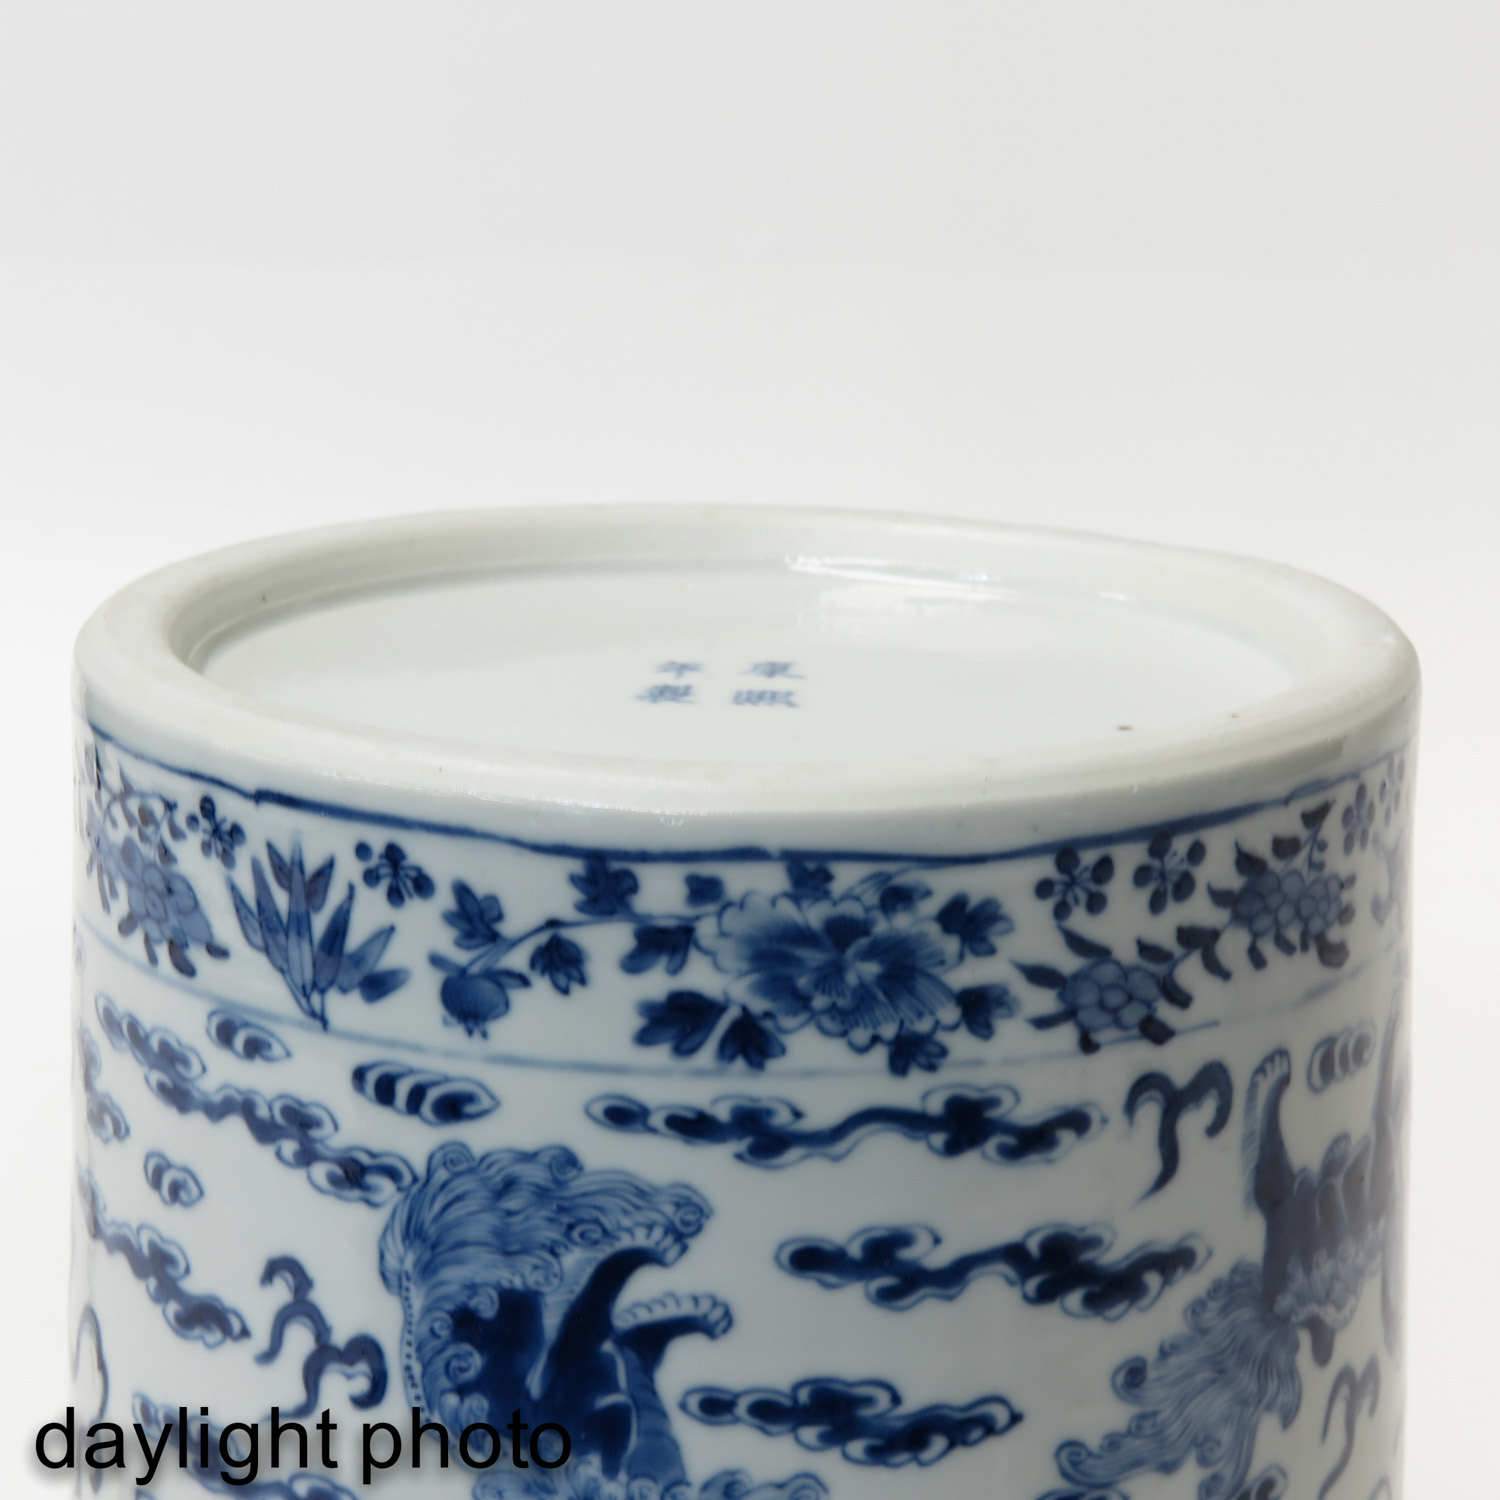 A Blue and White Vase - Image 8 of 10